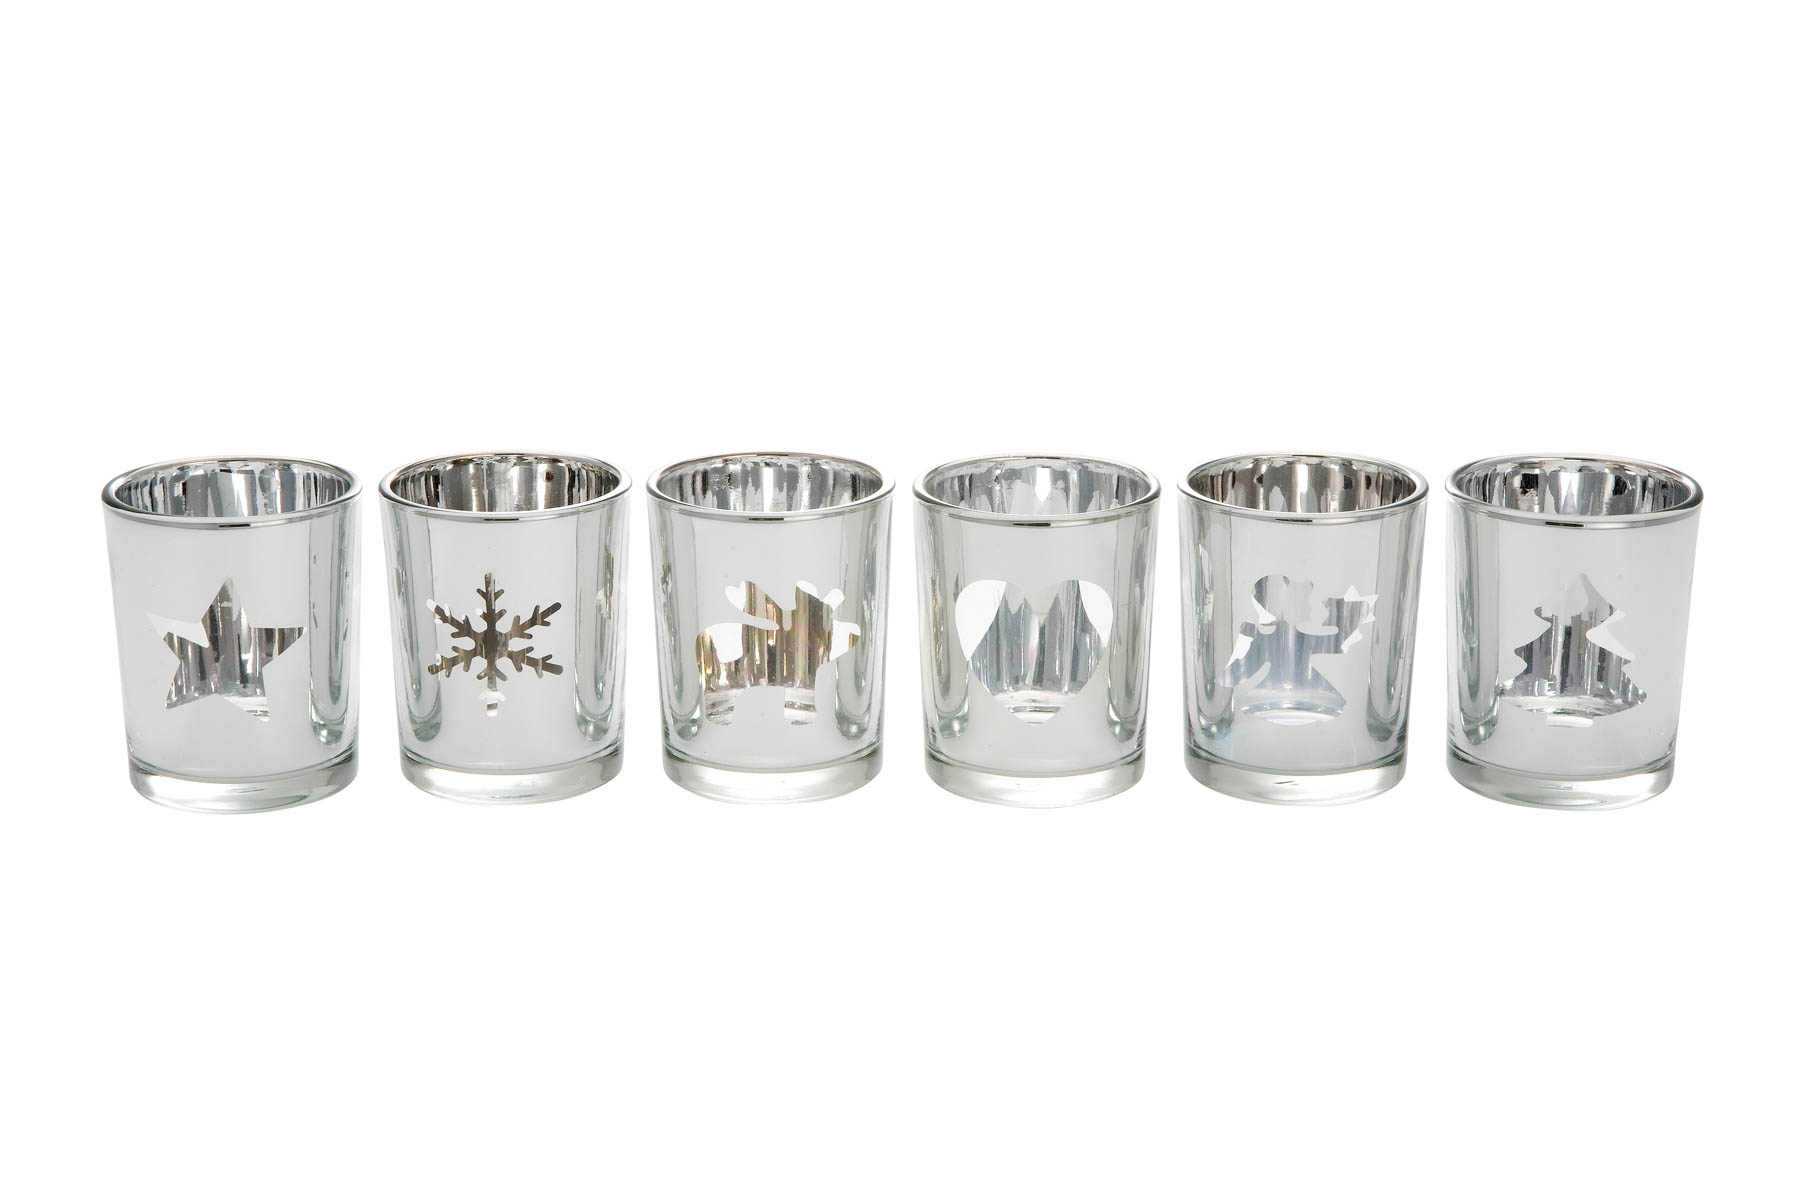 Tealight Holder Silver, Set of 6, different pattern